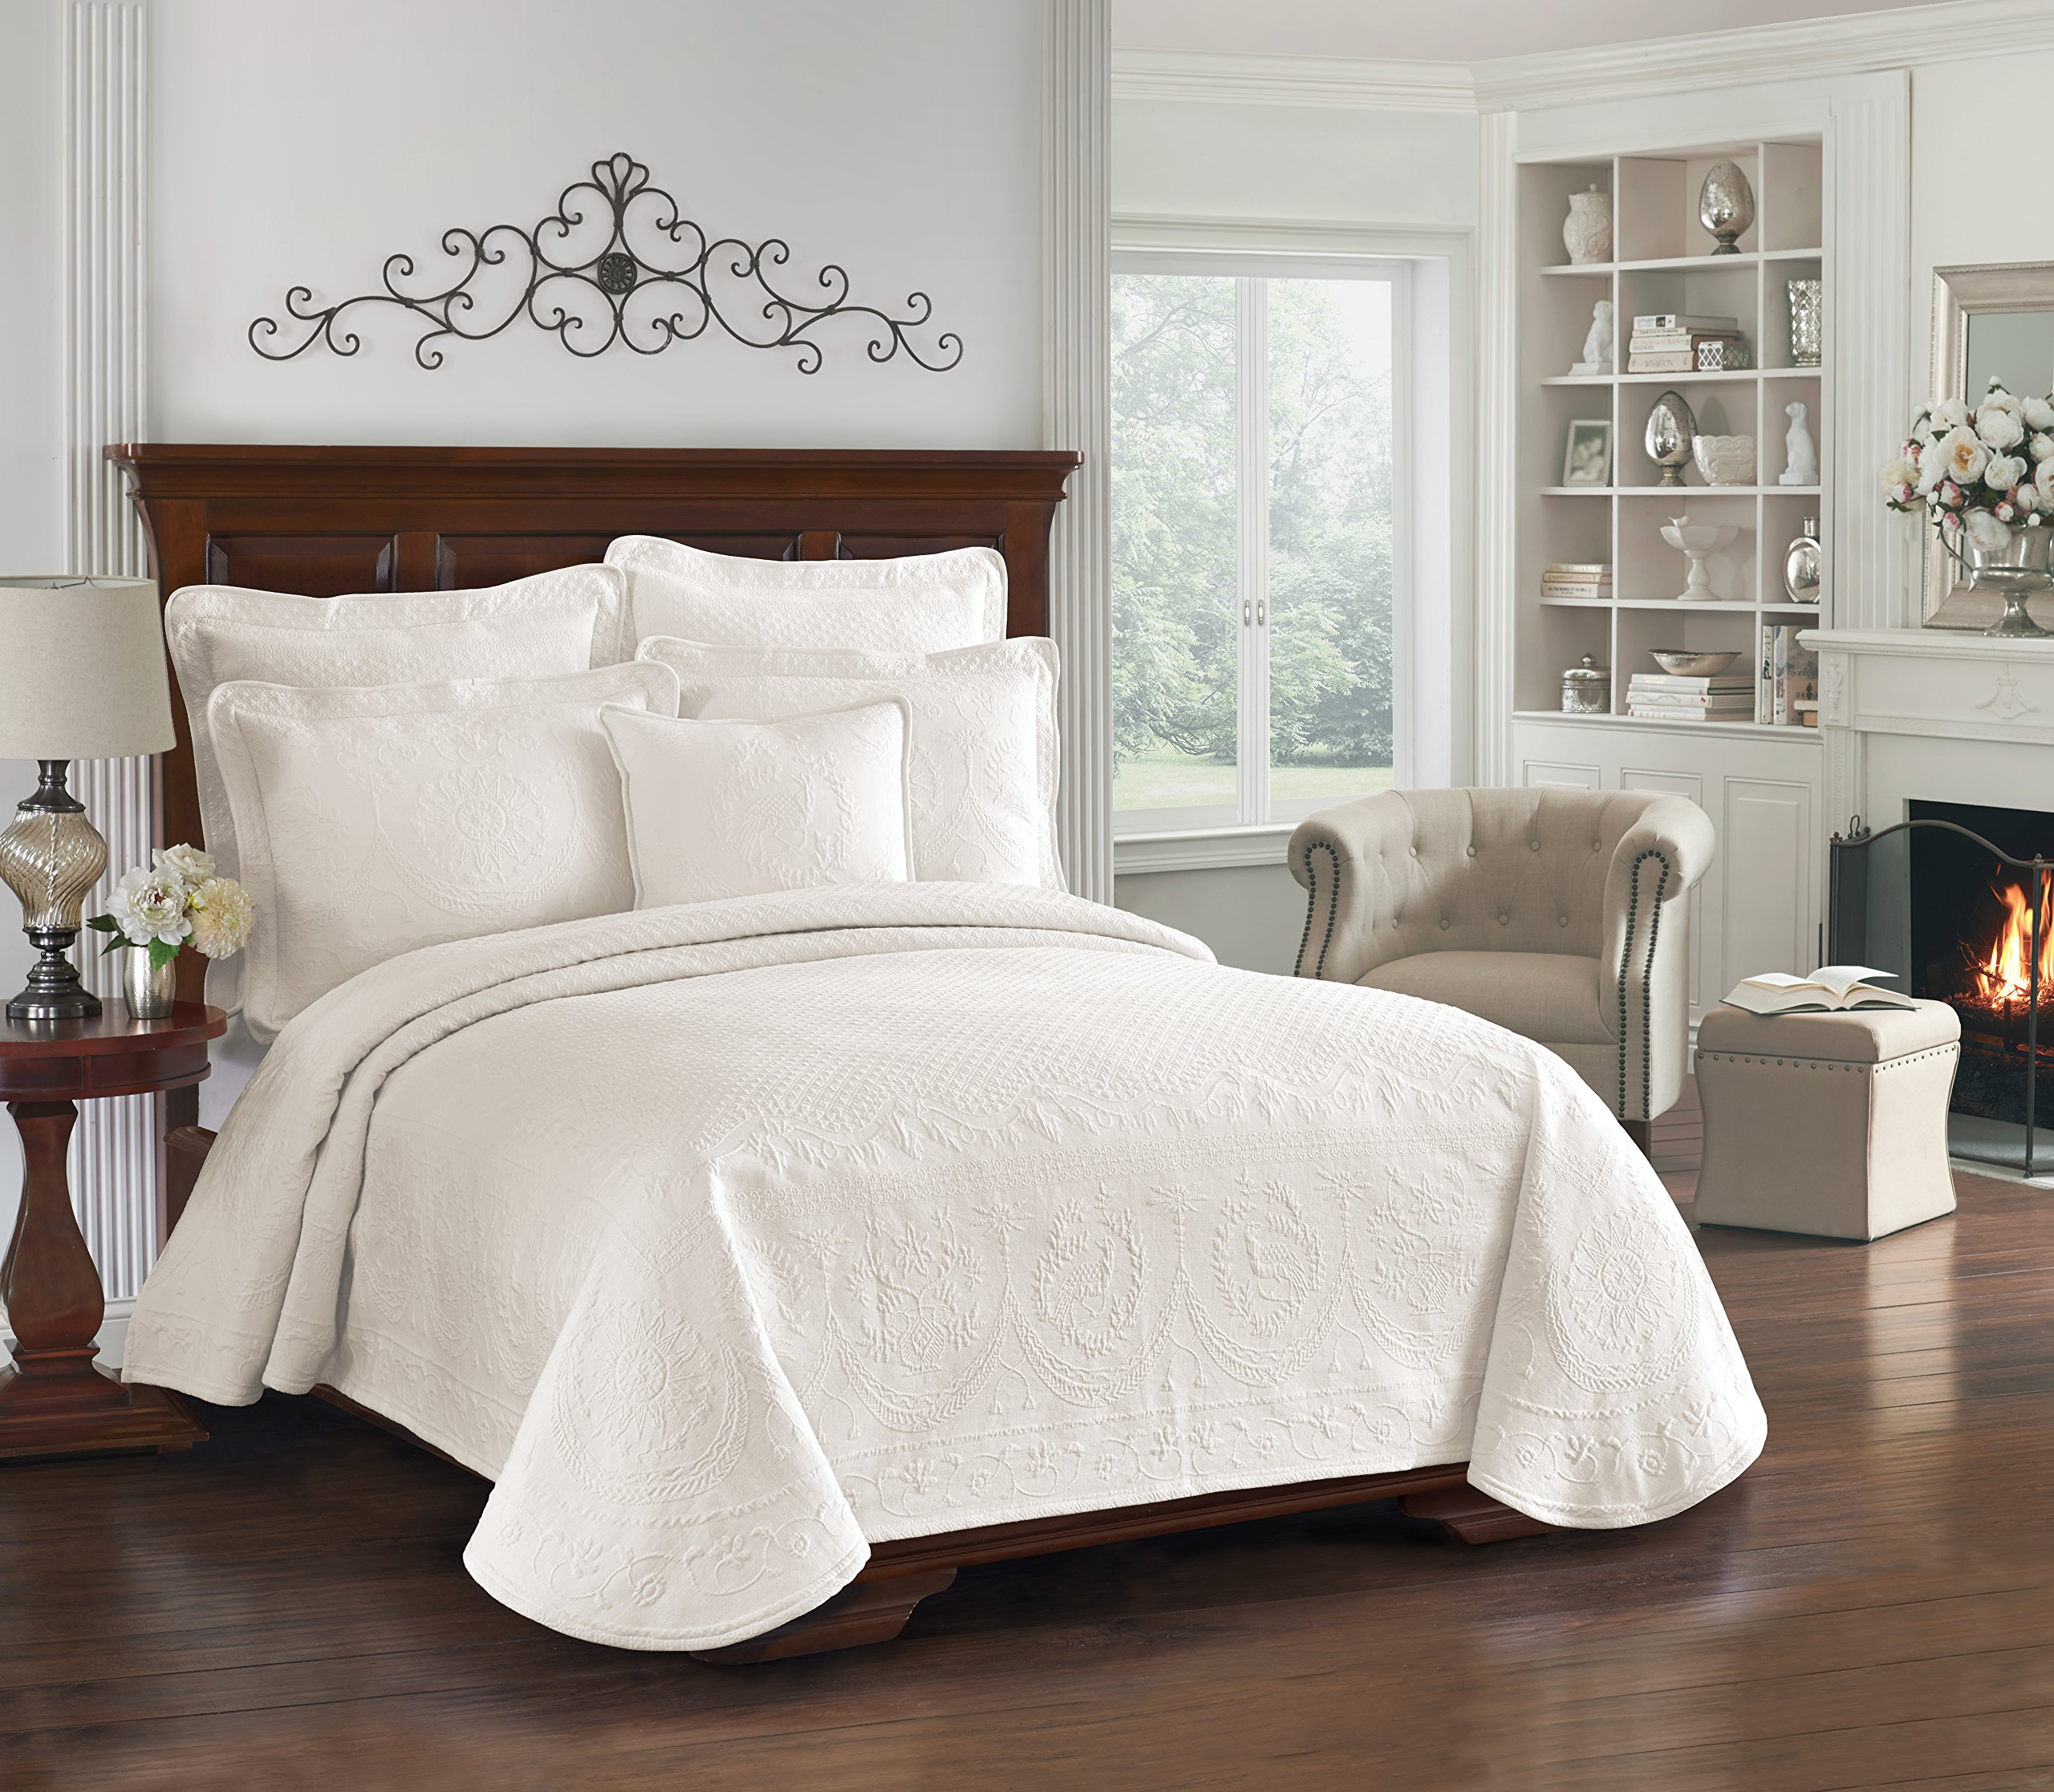 Historic Charleston 13991BEDDKNGIVY King Charles Matelasse 108-Inch by 96-Inch King Coverlet, Ivory